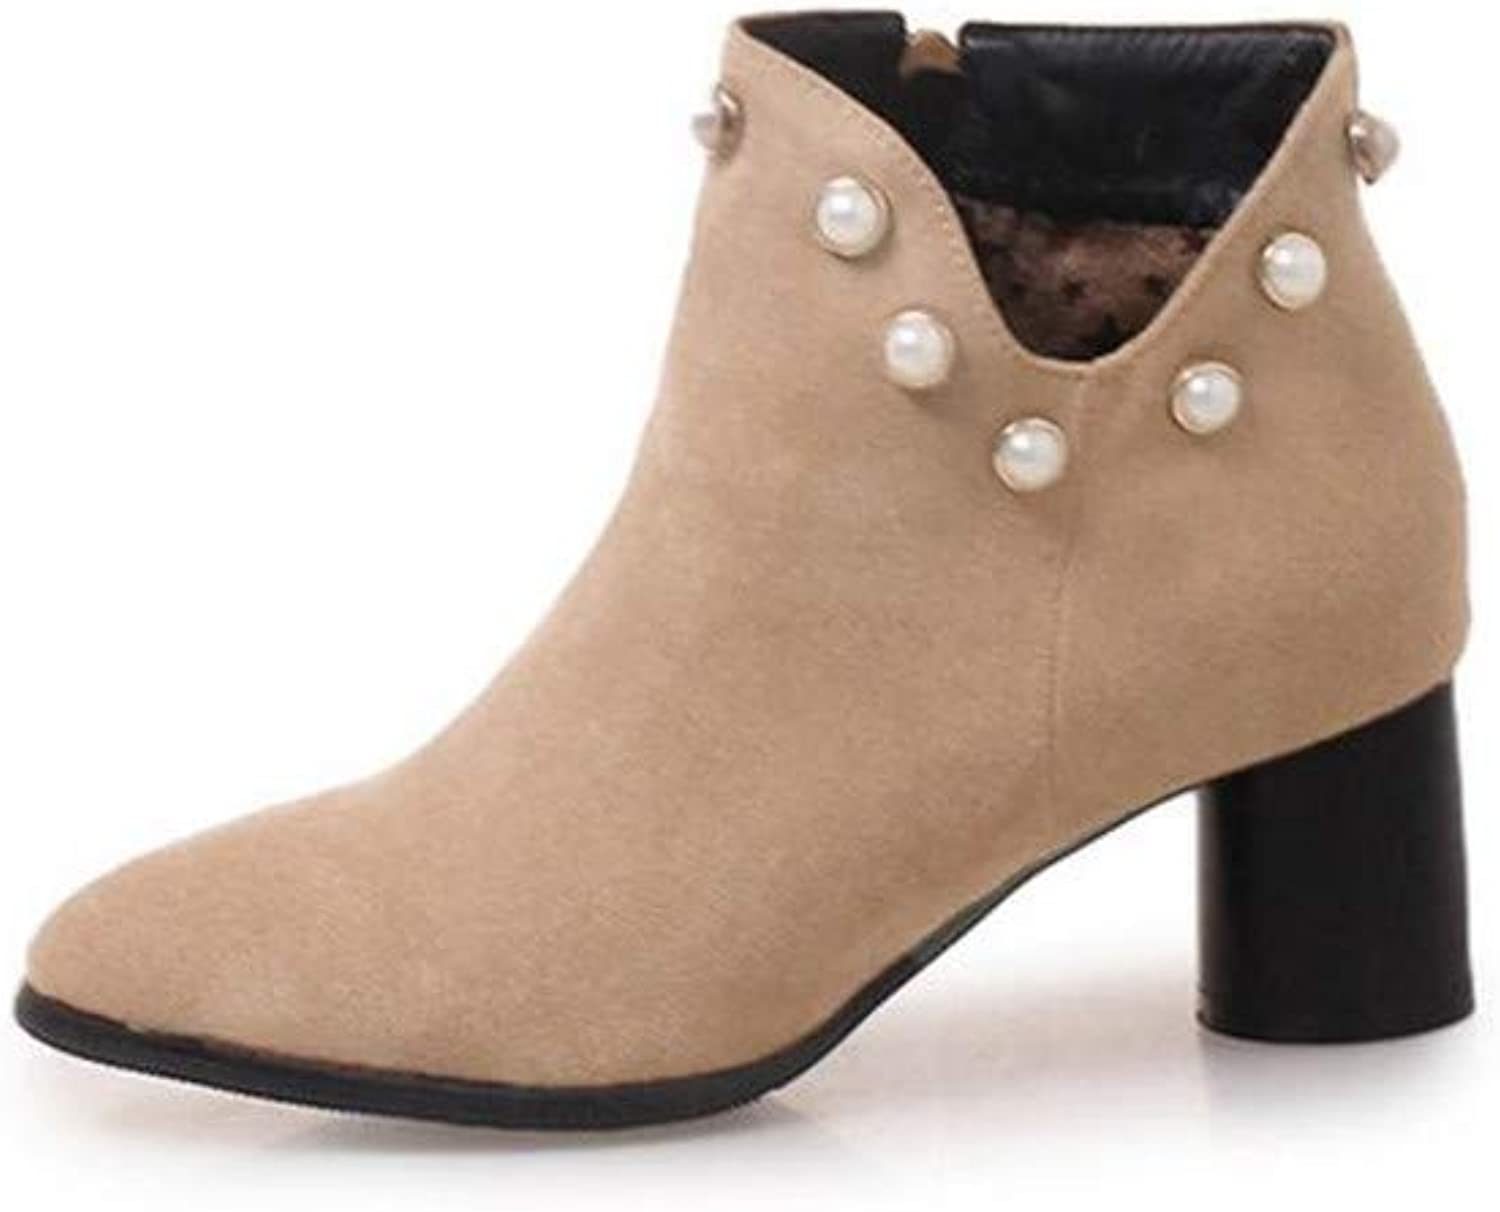 MODEOK Women's High Heel Fashion Fall Cute Ankle Boots